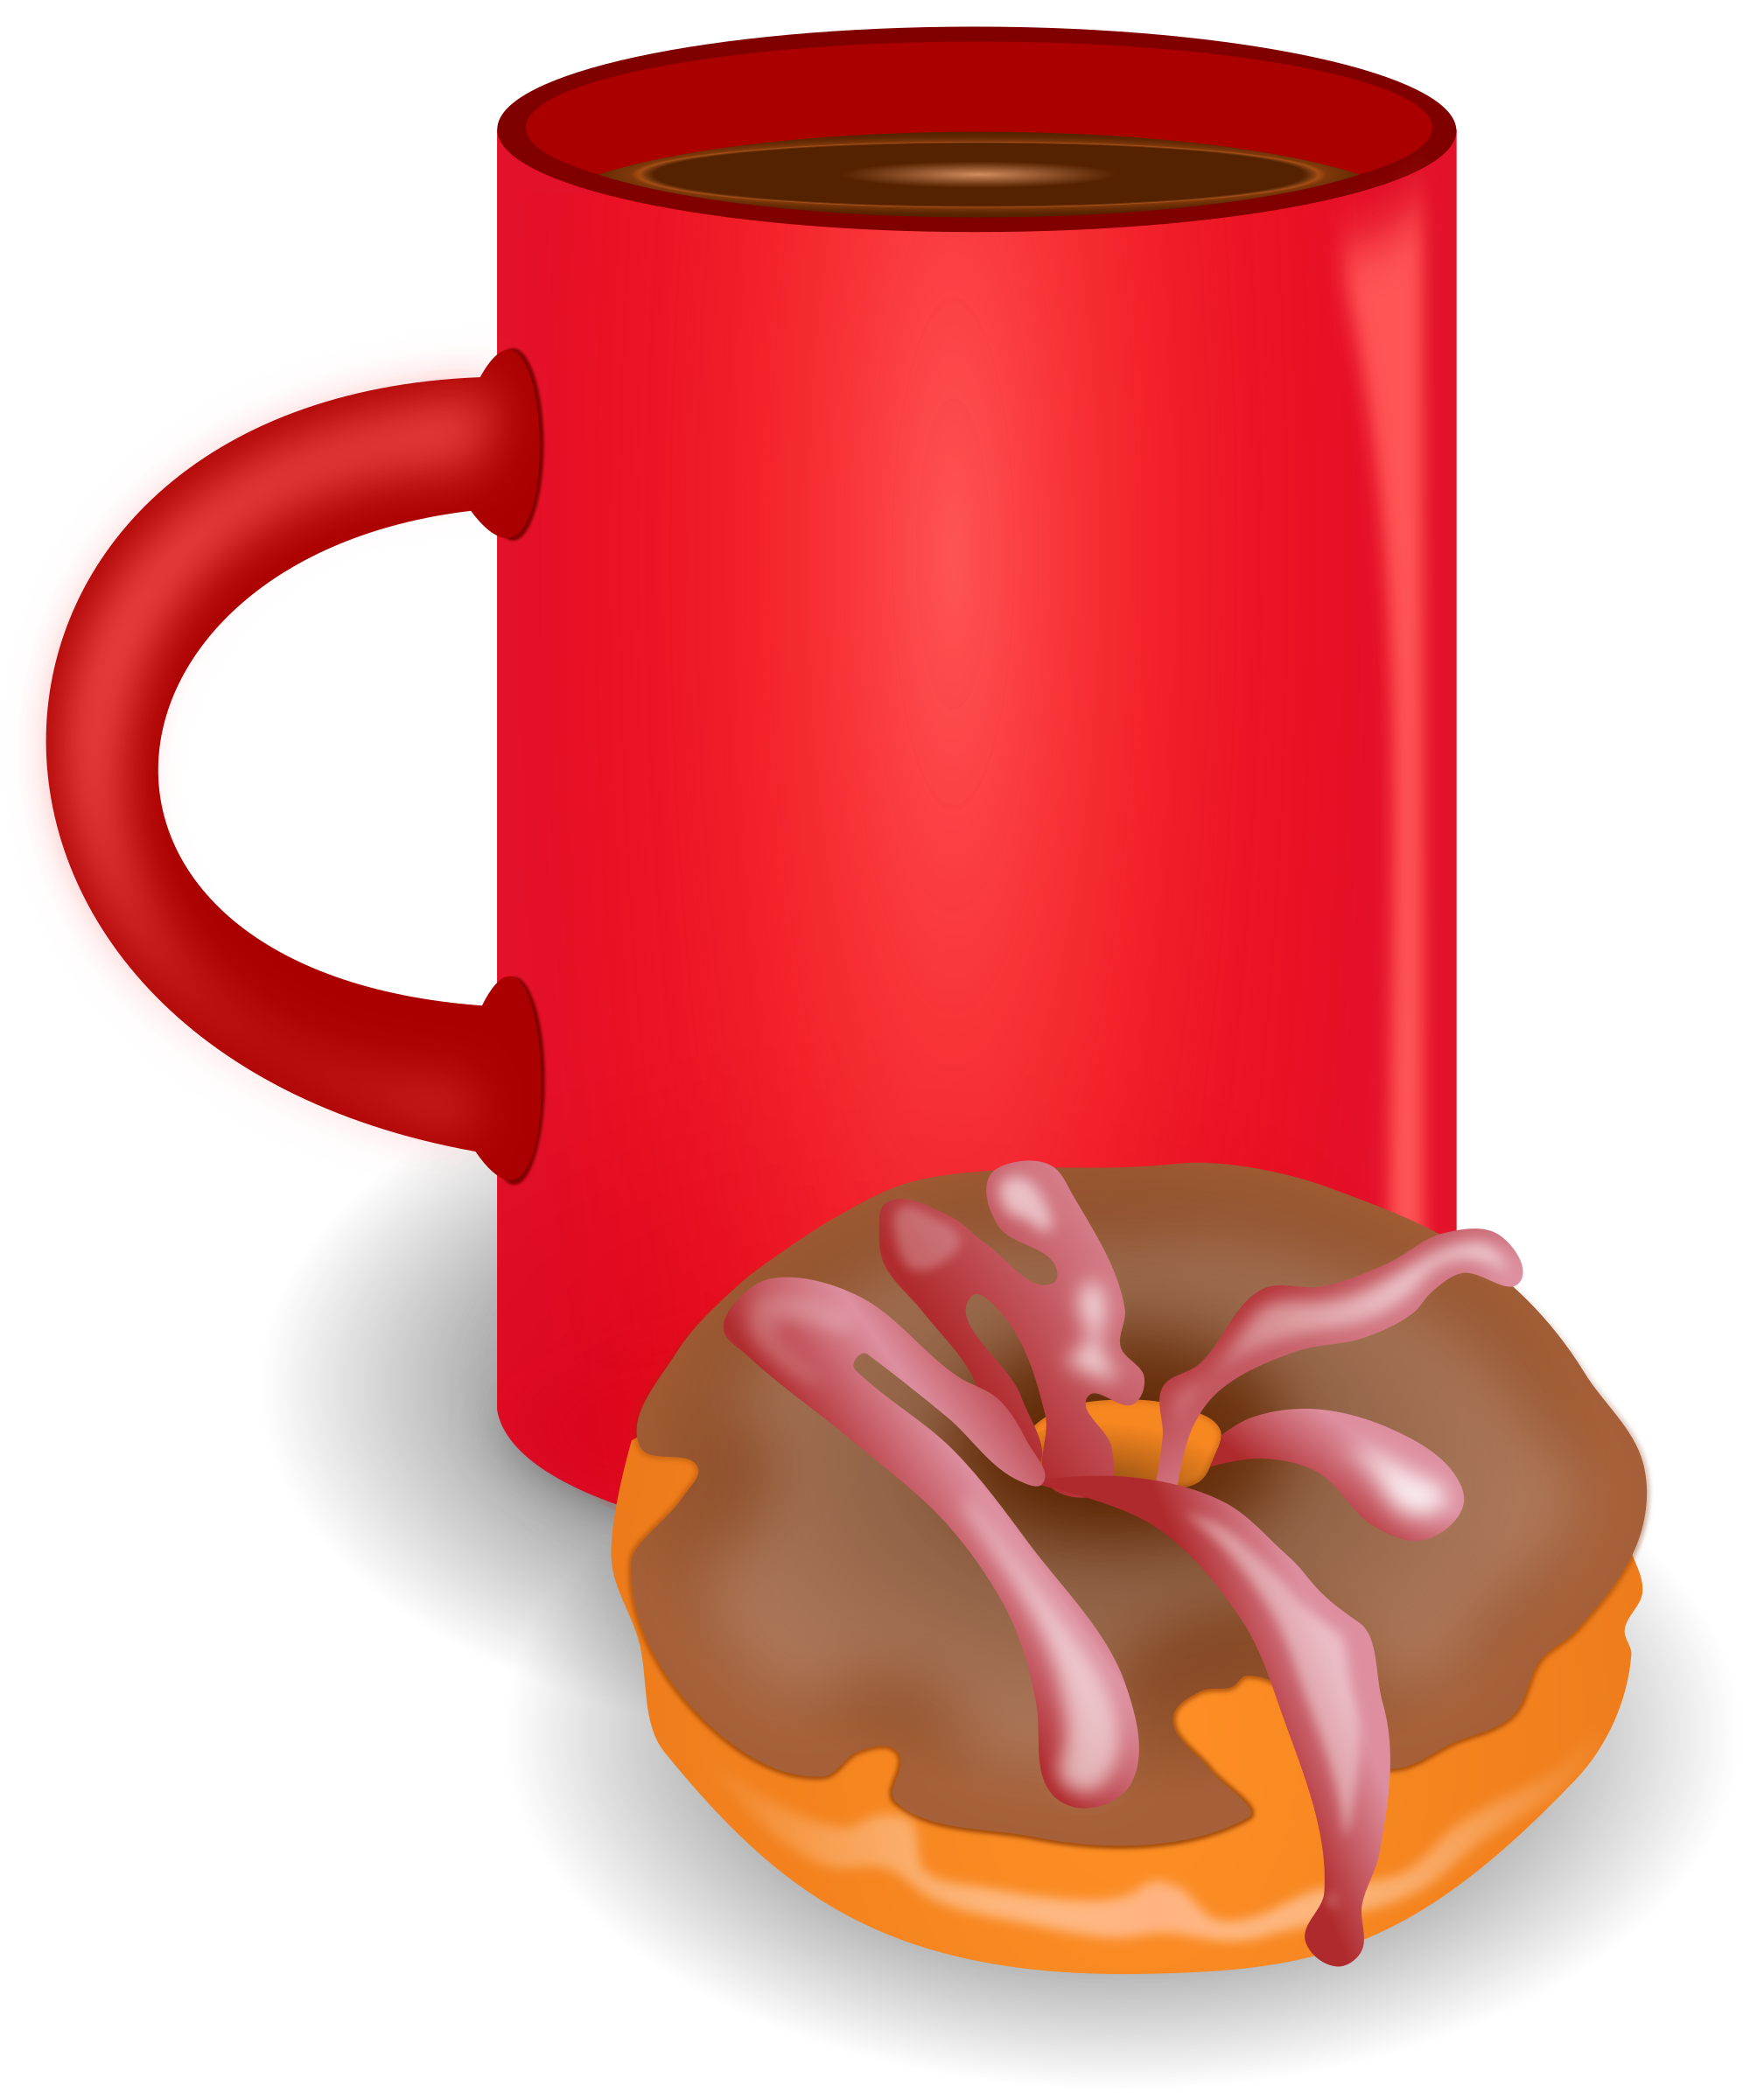 Clipart coffee donut. And doughnut big image